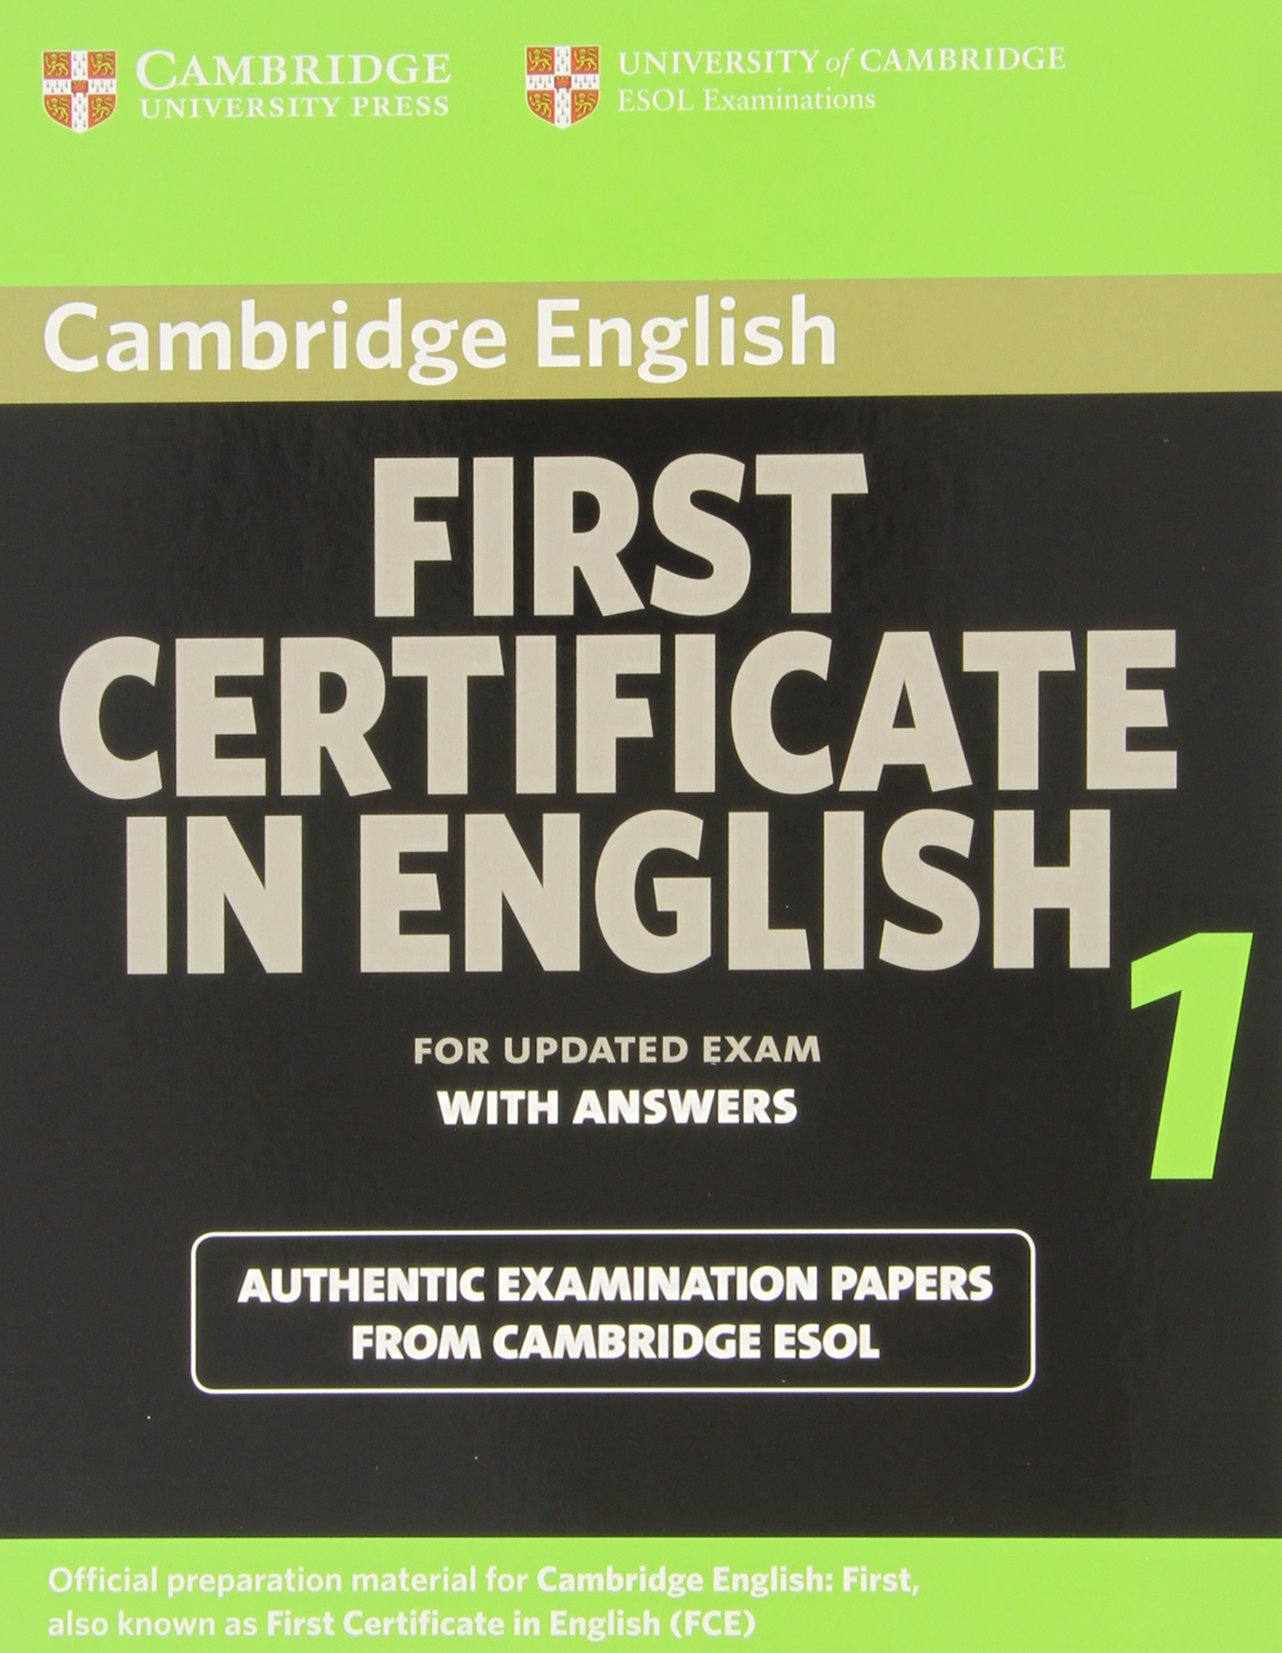 cambridge english first  Buy Cambridge First Certificate in English 1 for updated exam ...